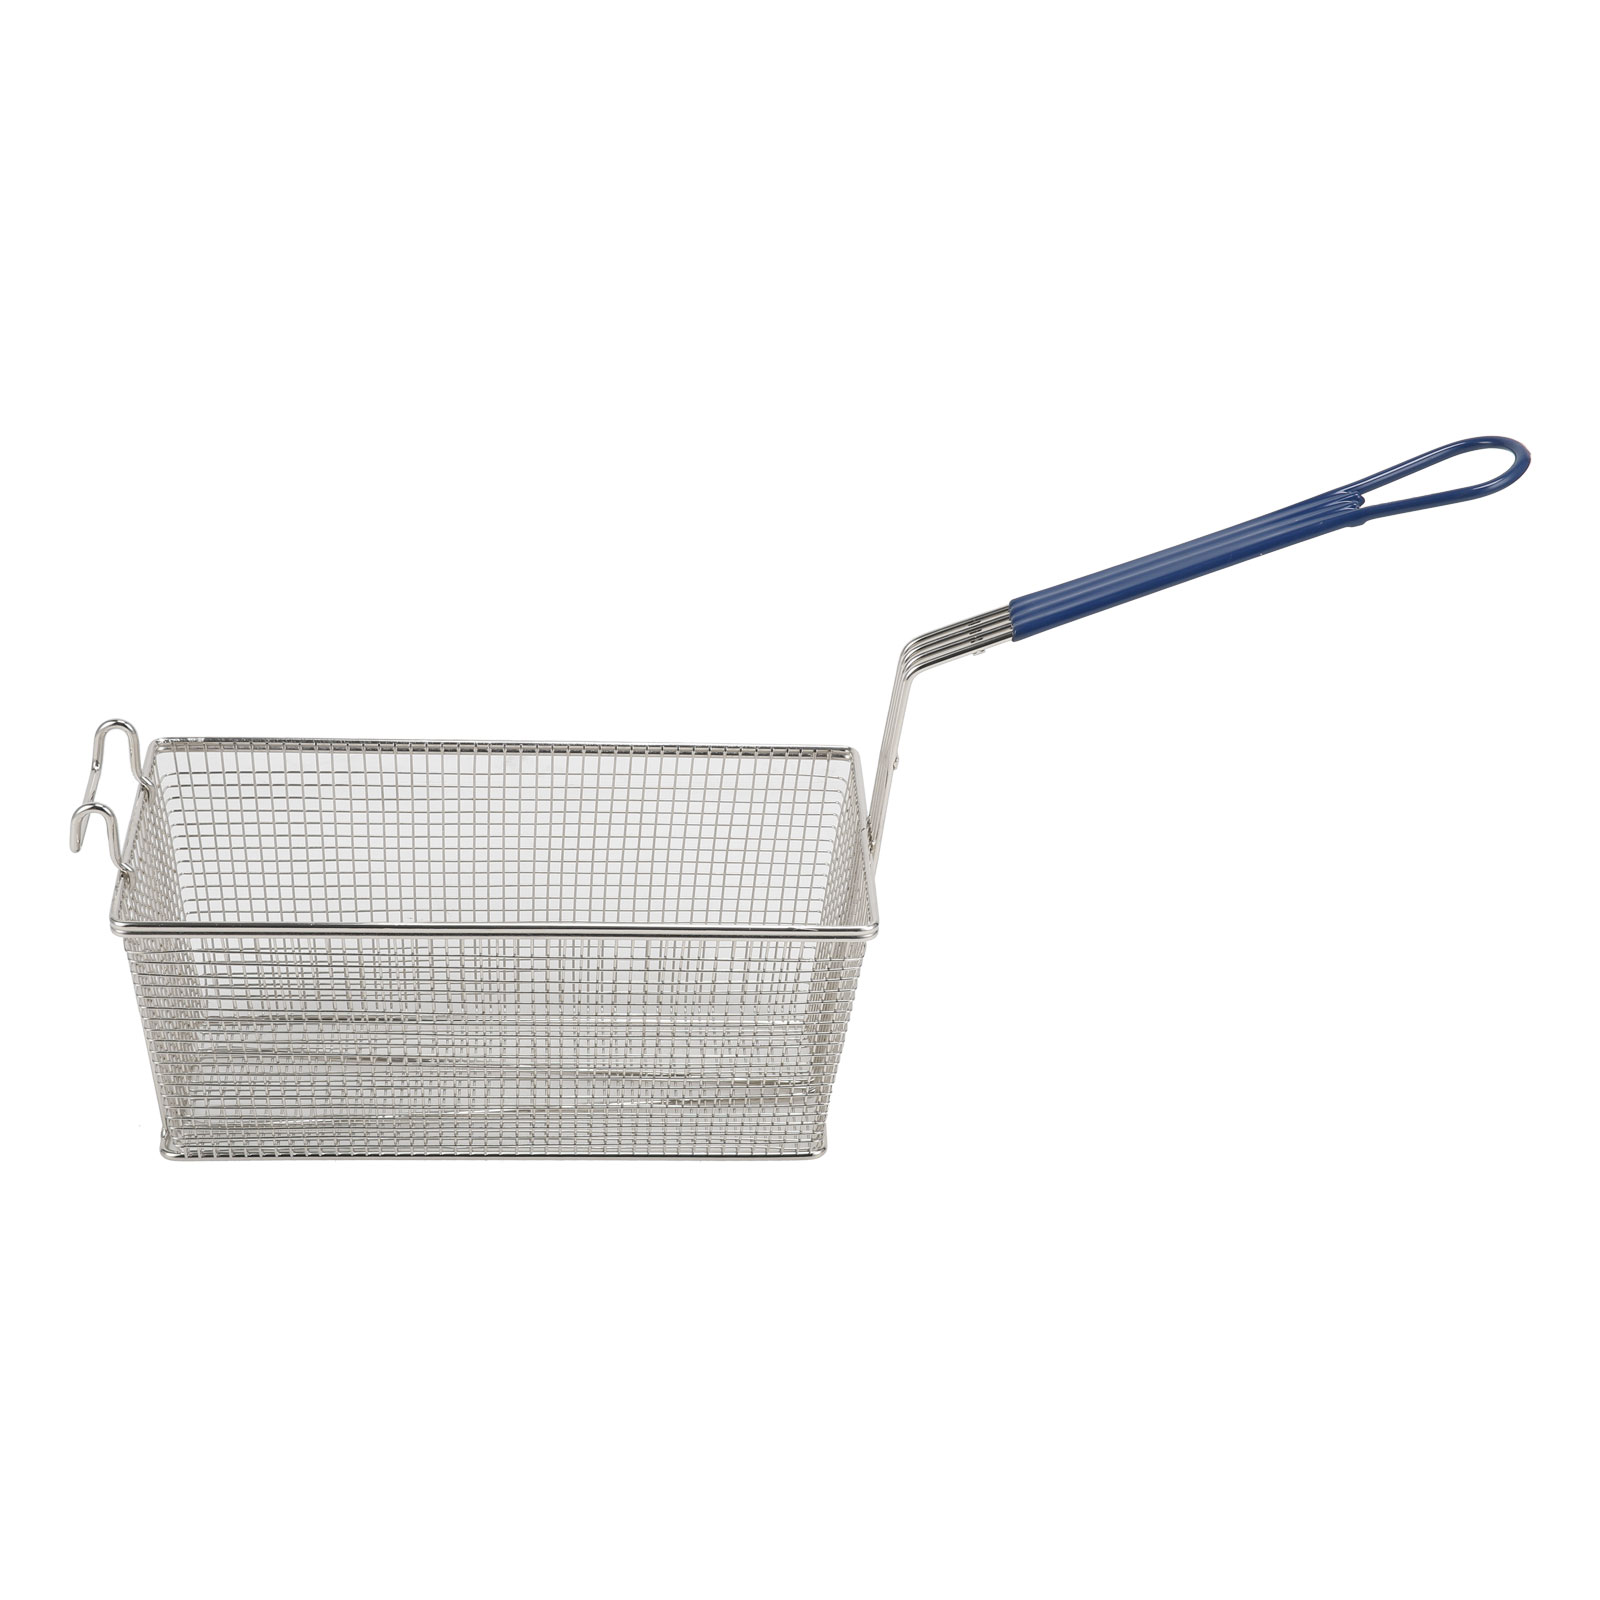 Specifications for Fish fryer basket